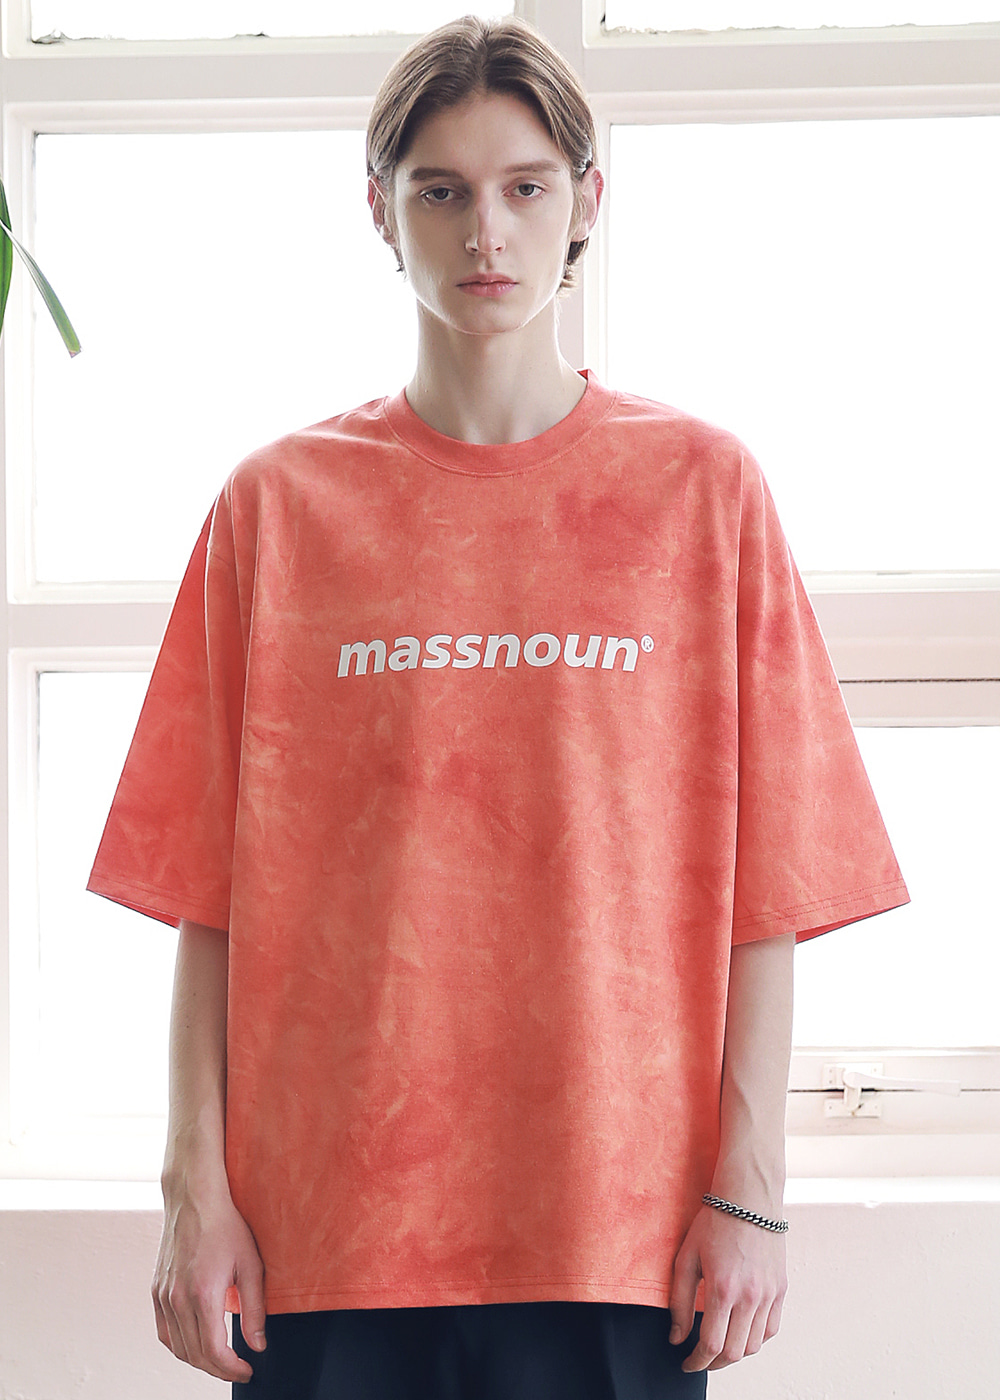 SL LOGO TIE-DYE OVERSIZED T-SHIRTS MSNTS009-CR